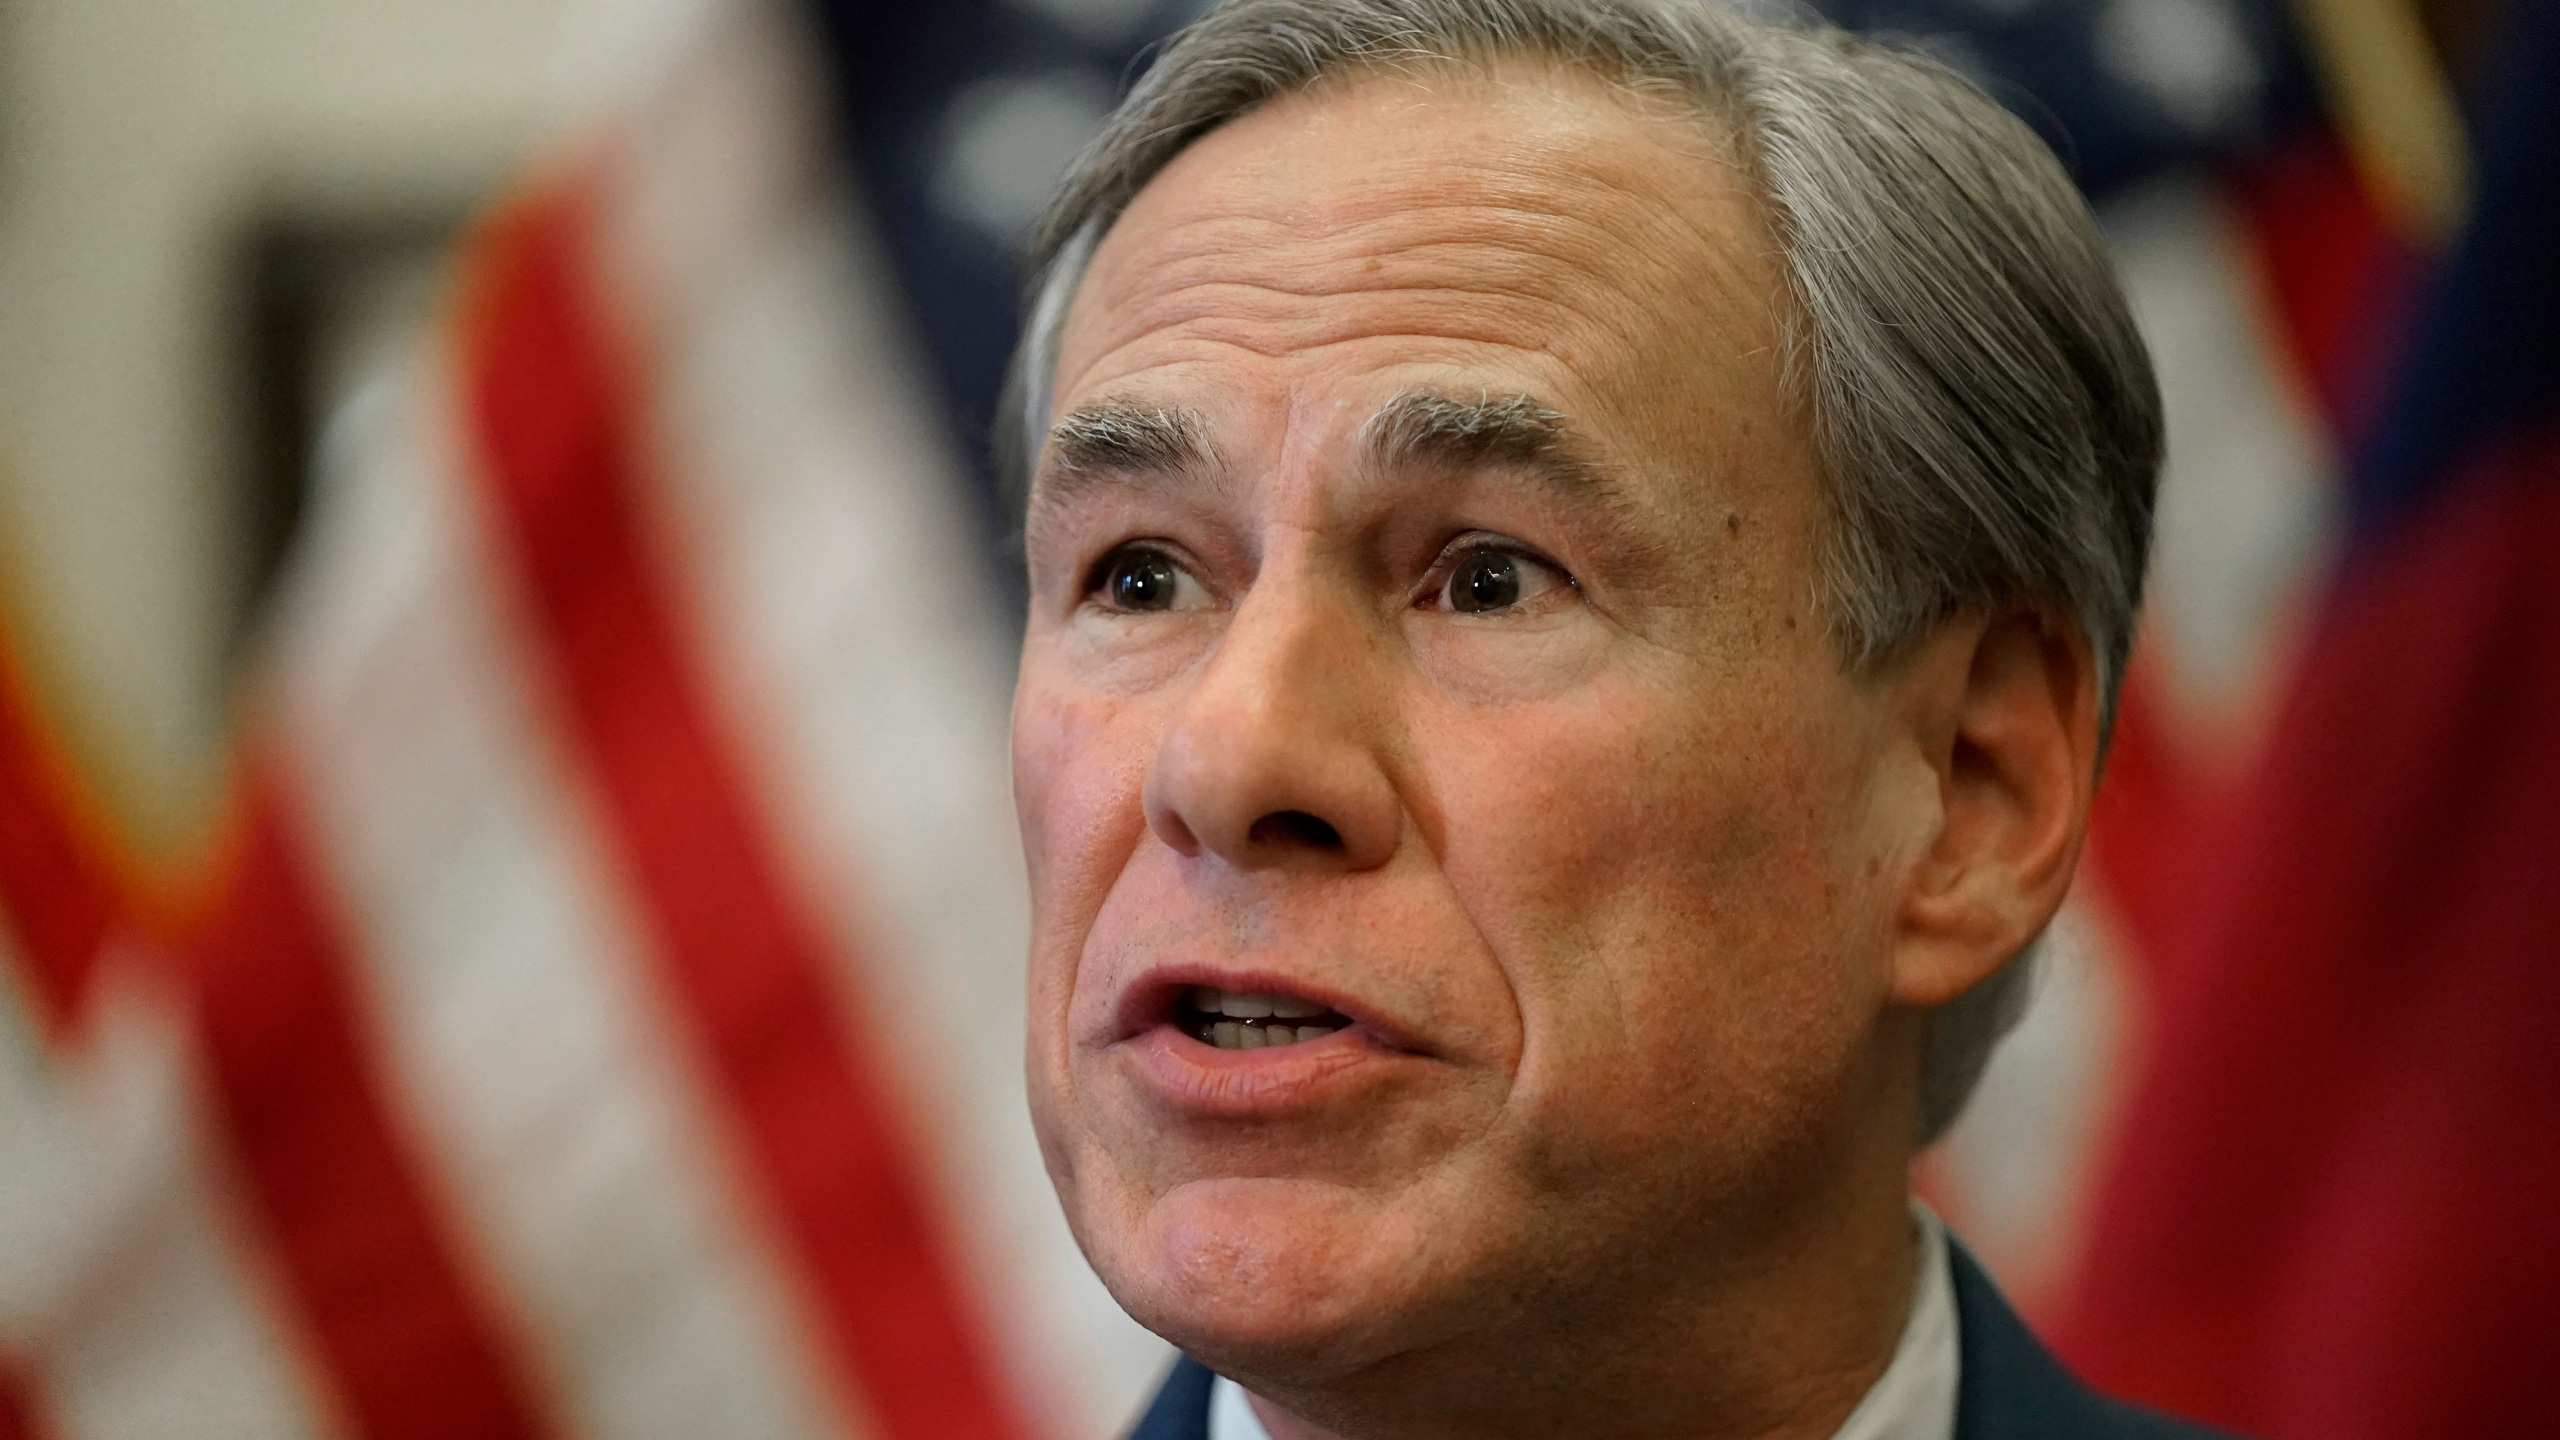 Texas Gov. Greg Abbott speaks at a news conference in Austin, Texas, on June 8, 2021. (Eric Gay / Associated Press)